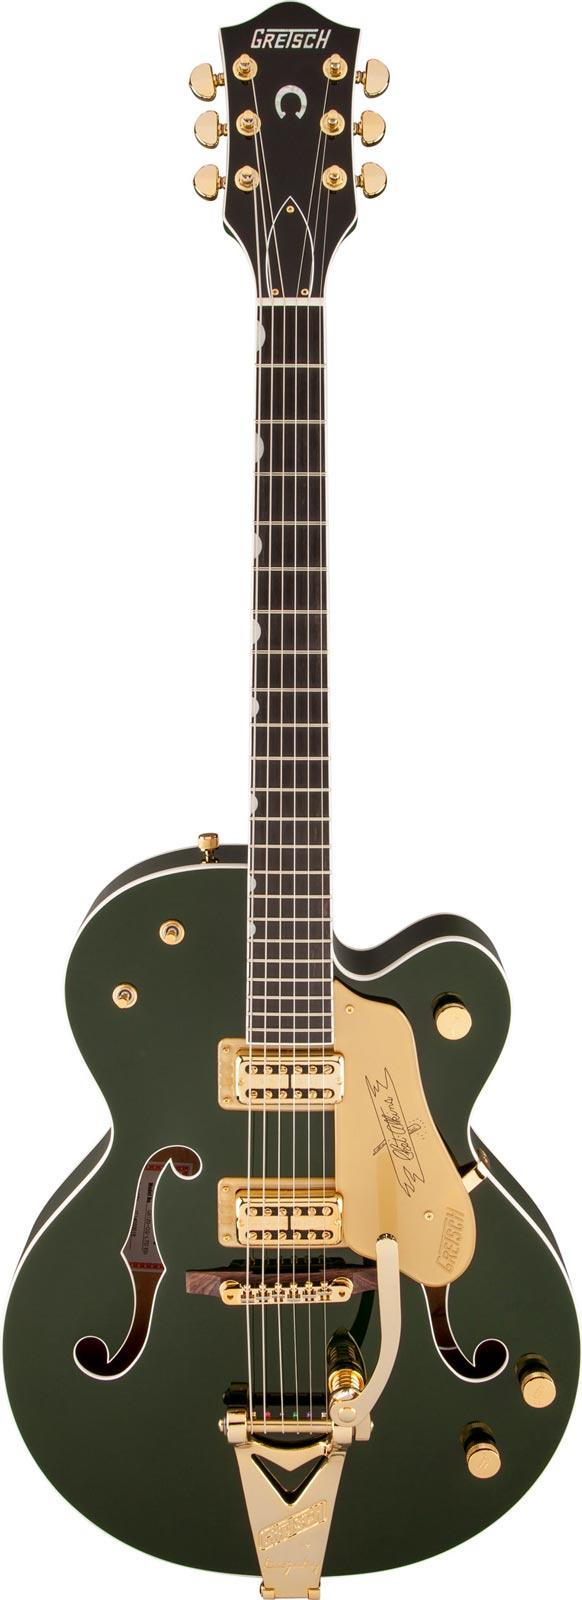 gretsch g6120 chet atkins hollow body cadillac green keymusic. Black Bedroom Furniture Sets. Home Design Ideas